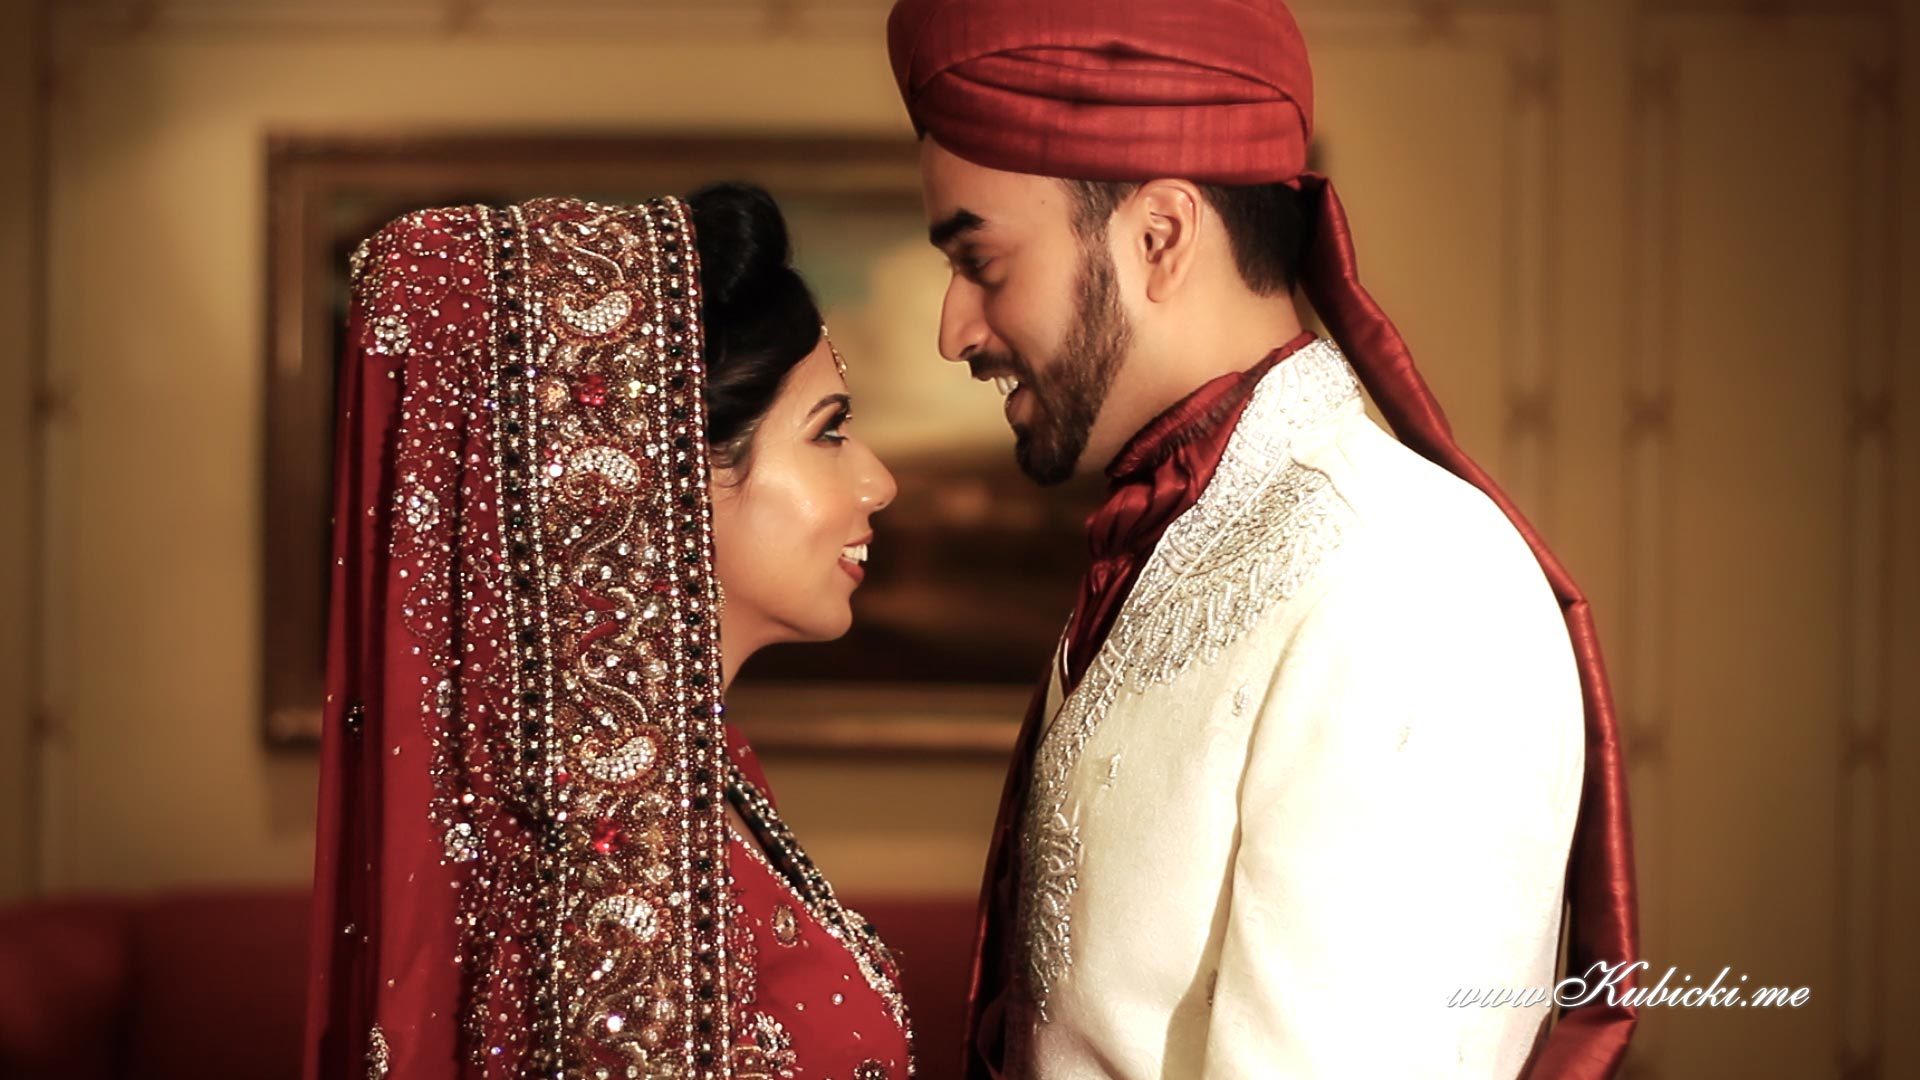 muslim-wedding-video.jpg